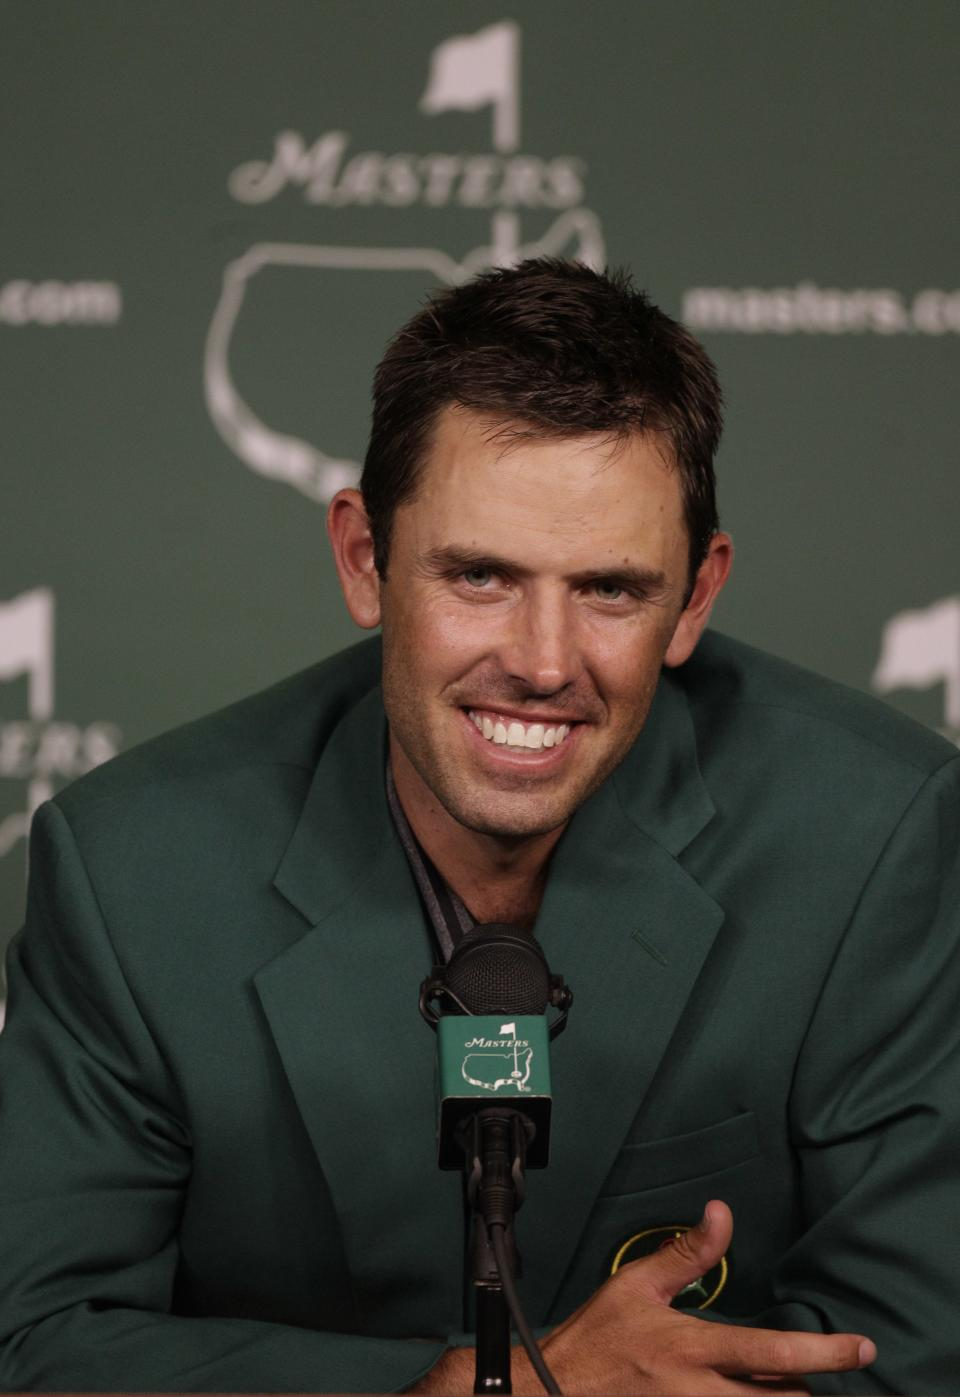 Charl Schwartzel of South Africa speaks to reporters after winning the Masters golf tournament Sunday, April 10, 2011, in Augusta, Ga. (AP Photo/Chris O'Meara)